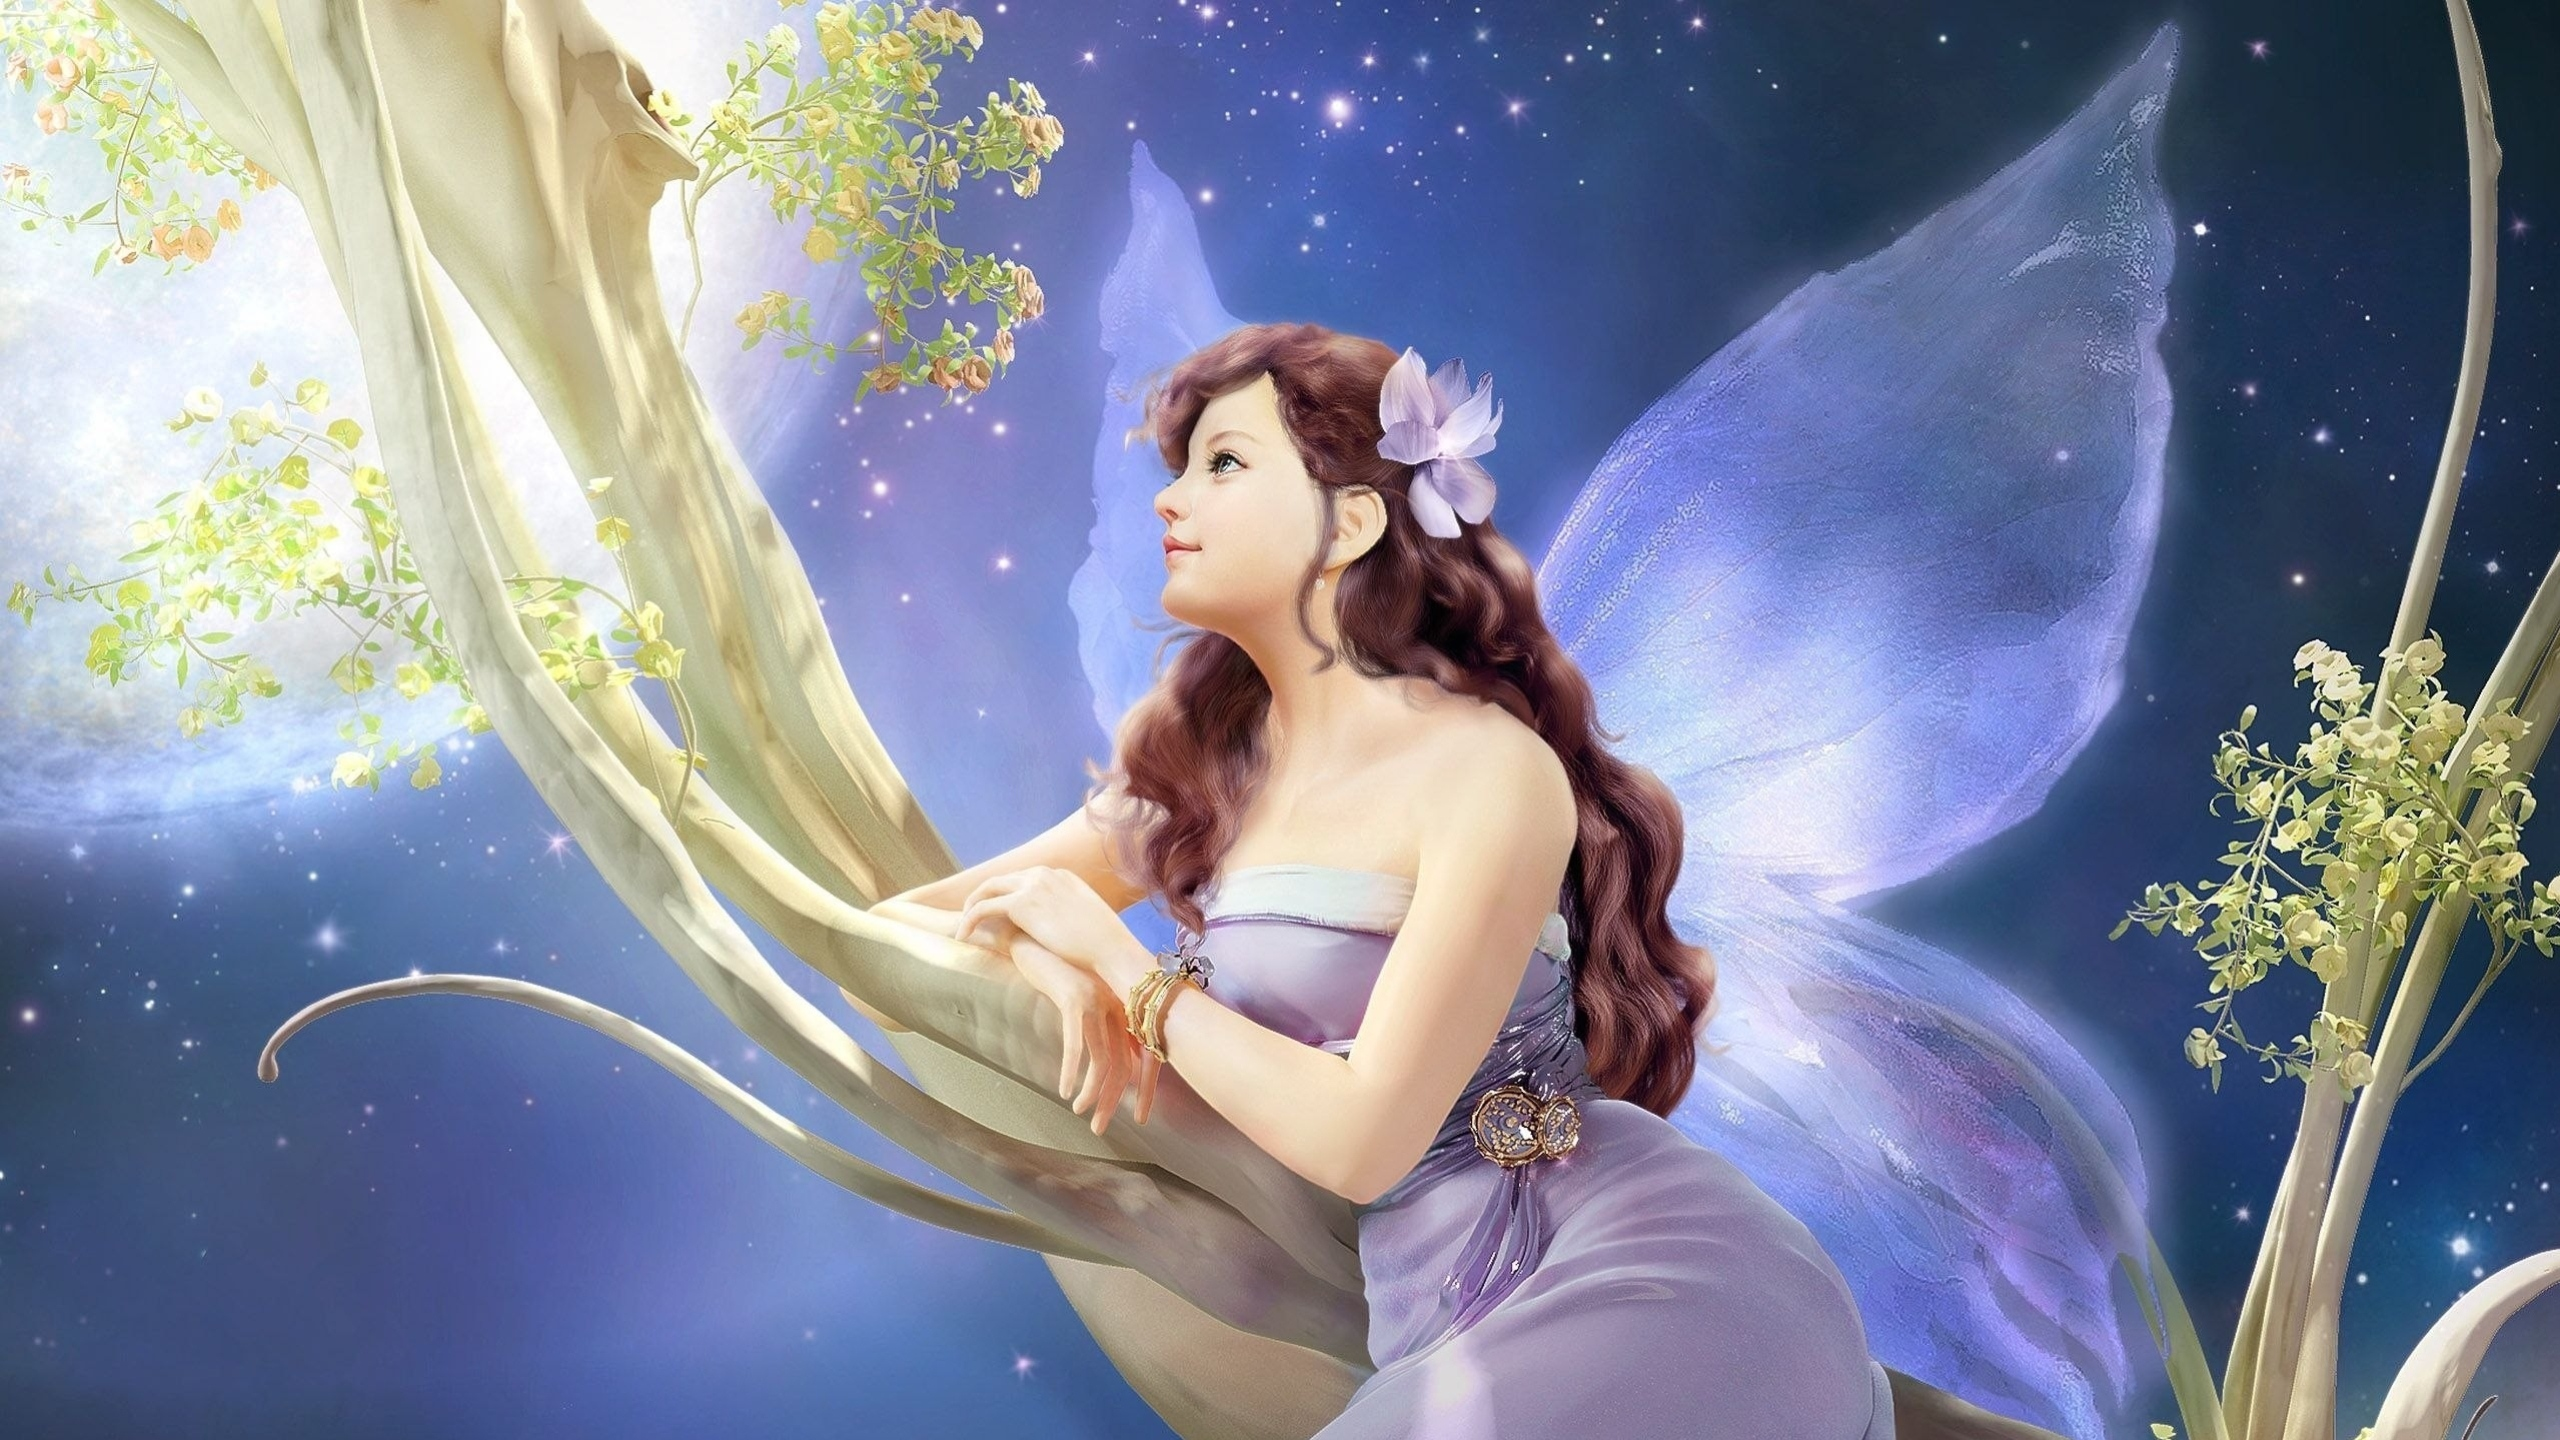 2560x1440 - Fairy Wallpapers 18